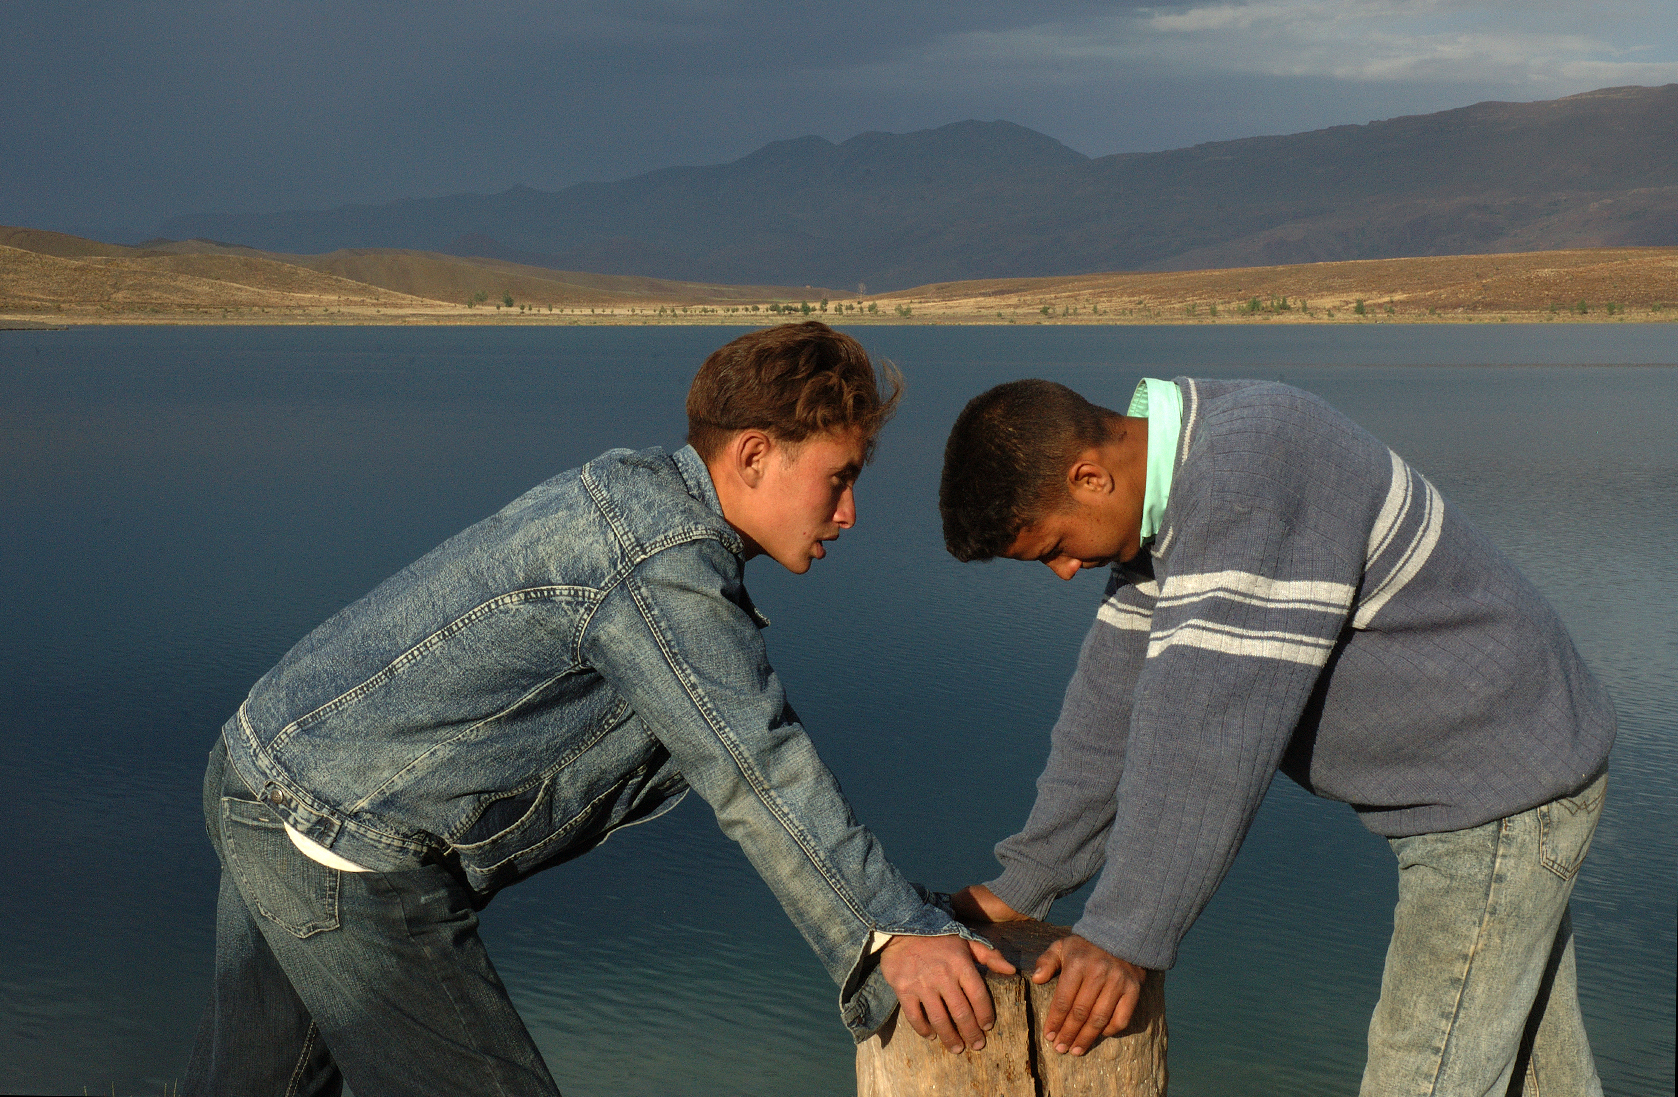 Mohammed and friend visiting a nearby lake for the first time.